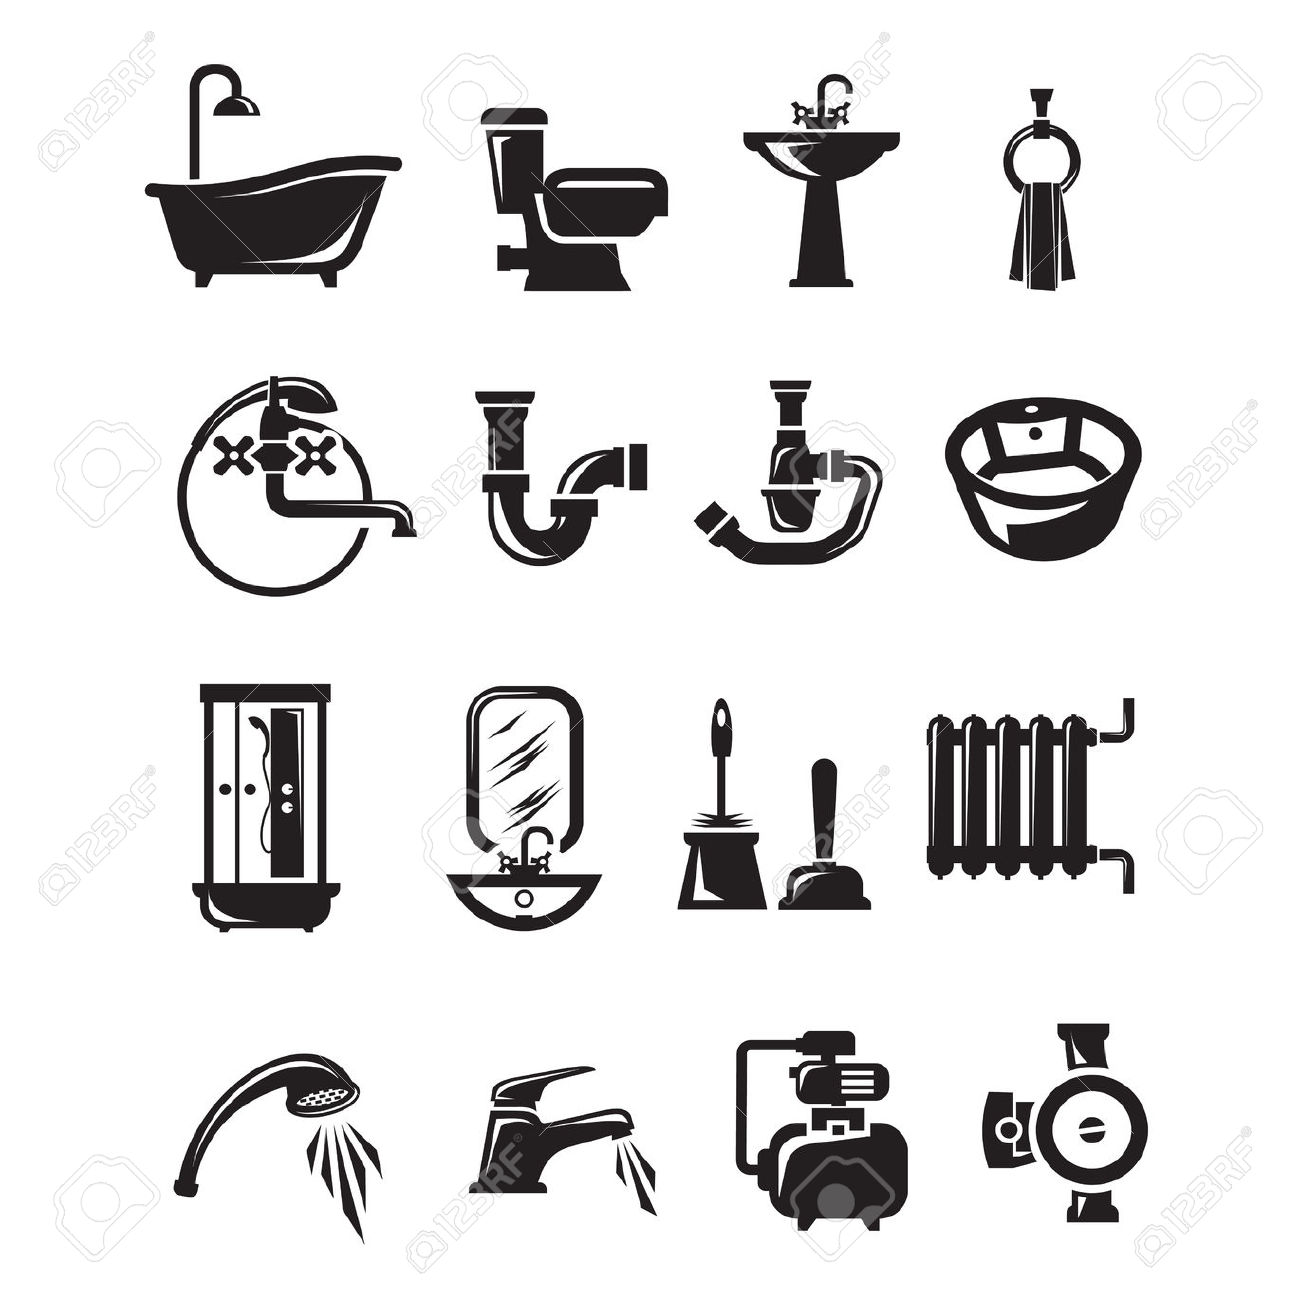 Plumbing and heating clipart vector library 16,211 Plumbing Stock Vector Illustration And Royalty Free ... vector library